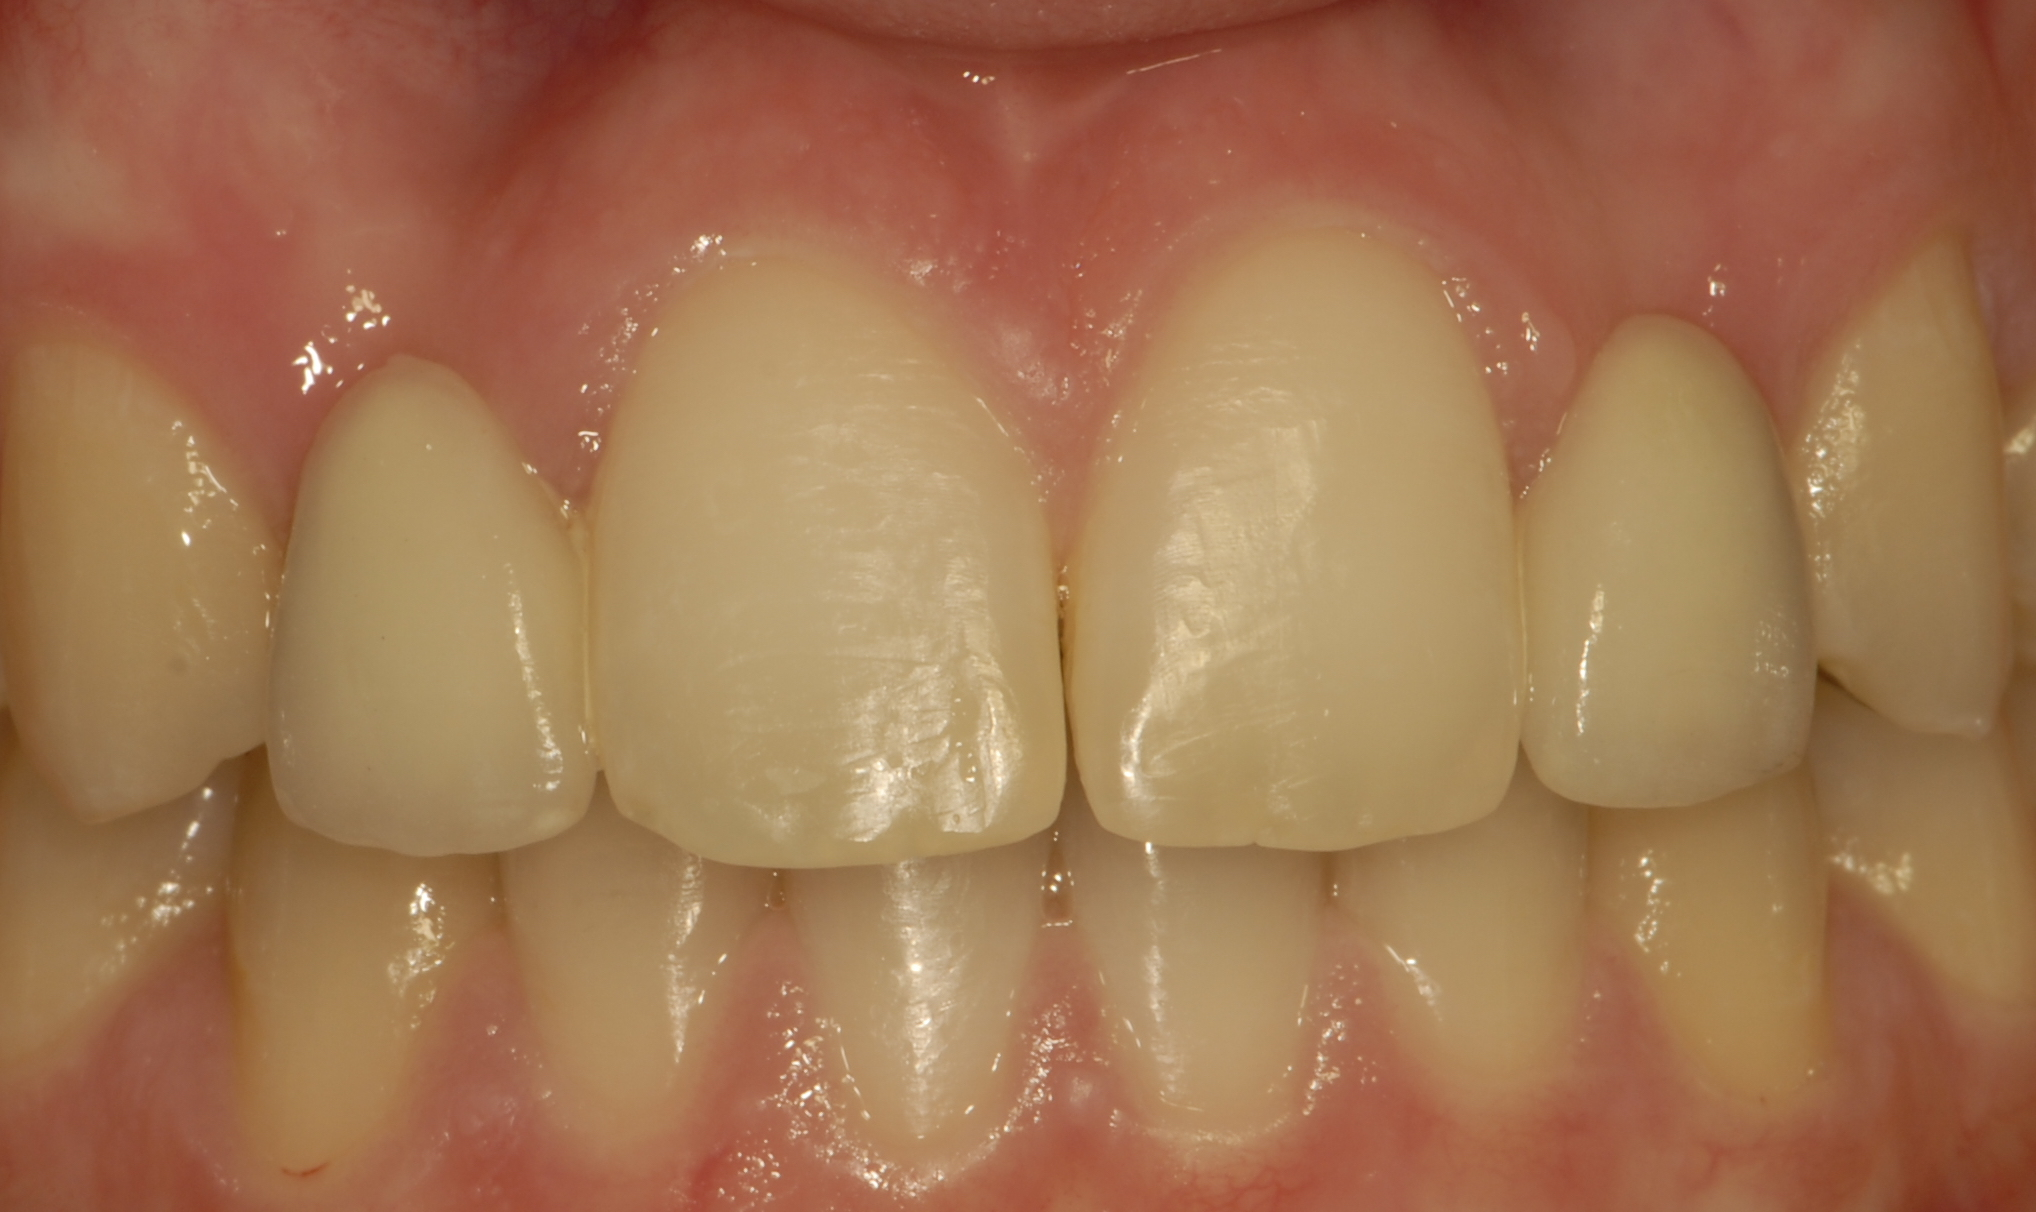 Bridges - A bridge is a device used to replace missing teeth by attaching an artificial tooth (pontic) to an adjacent natural tooth, or to an implant.  A bridge can be either permanently attached (fixed), or removable. The doctor will discuss options with you and recommend the best treatment.